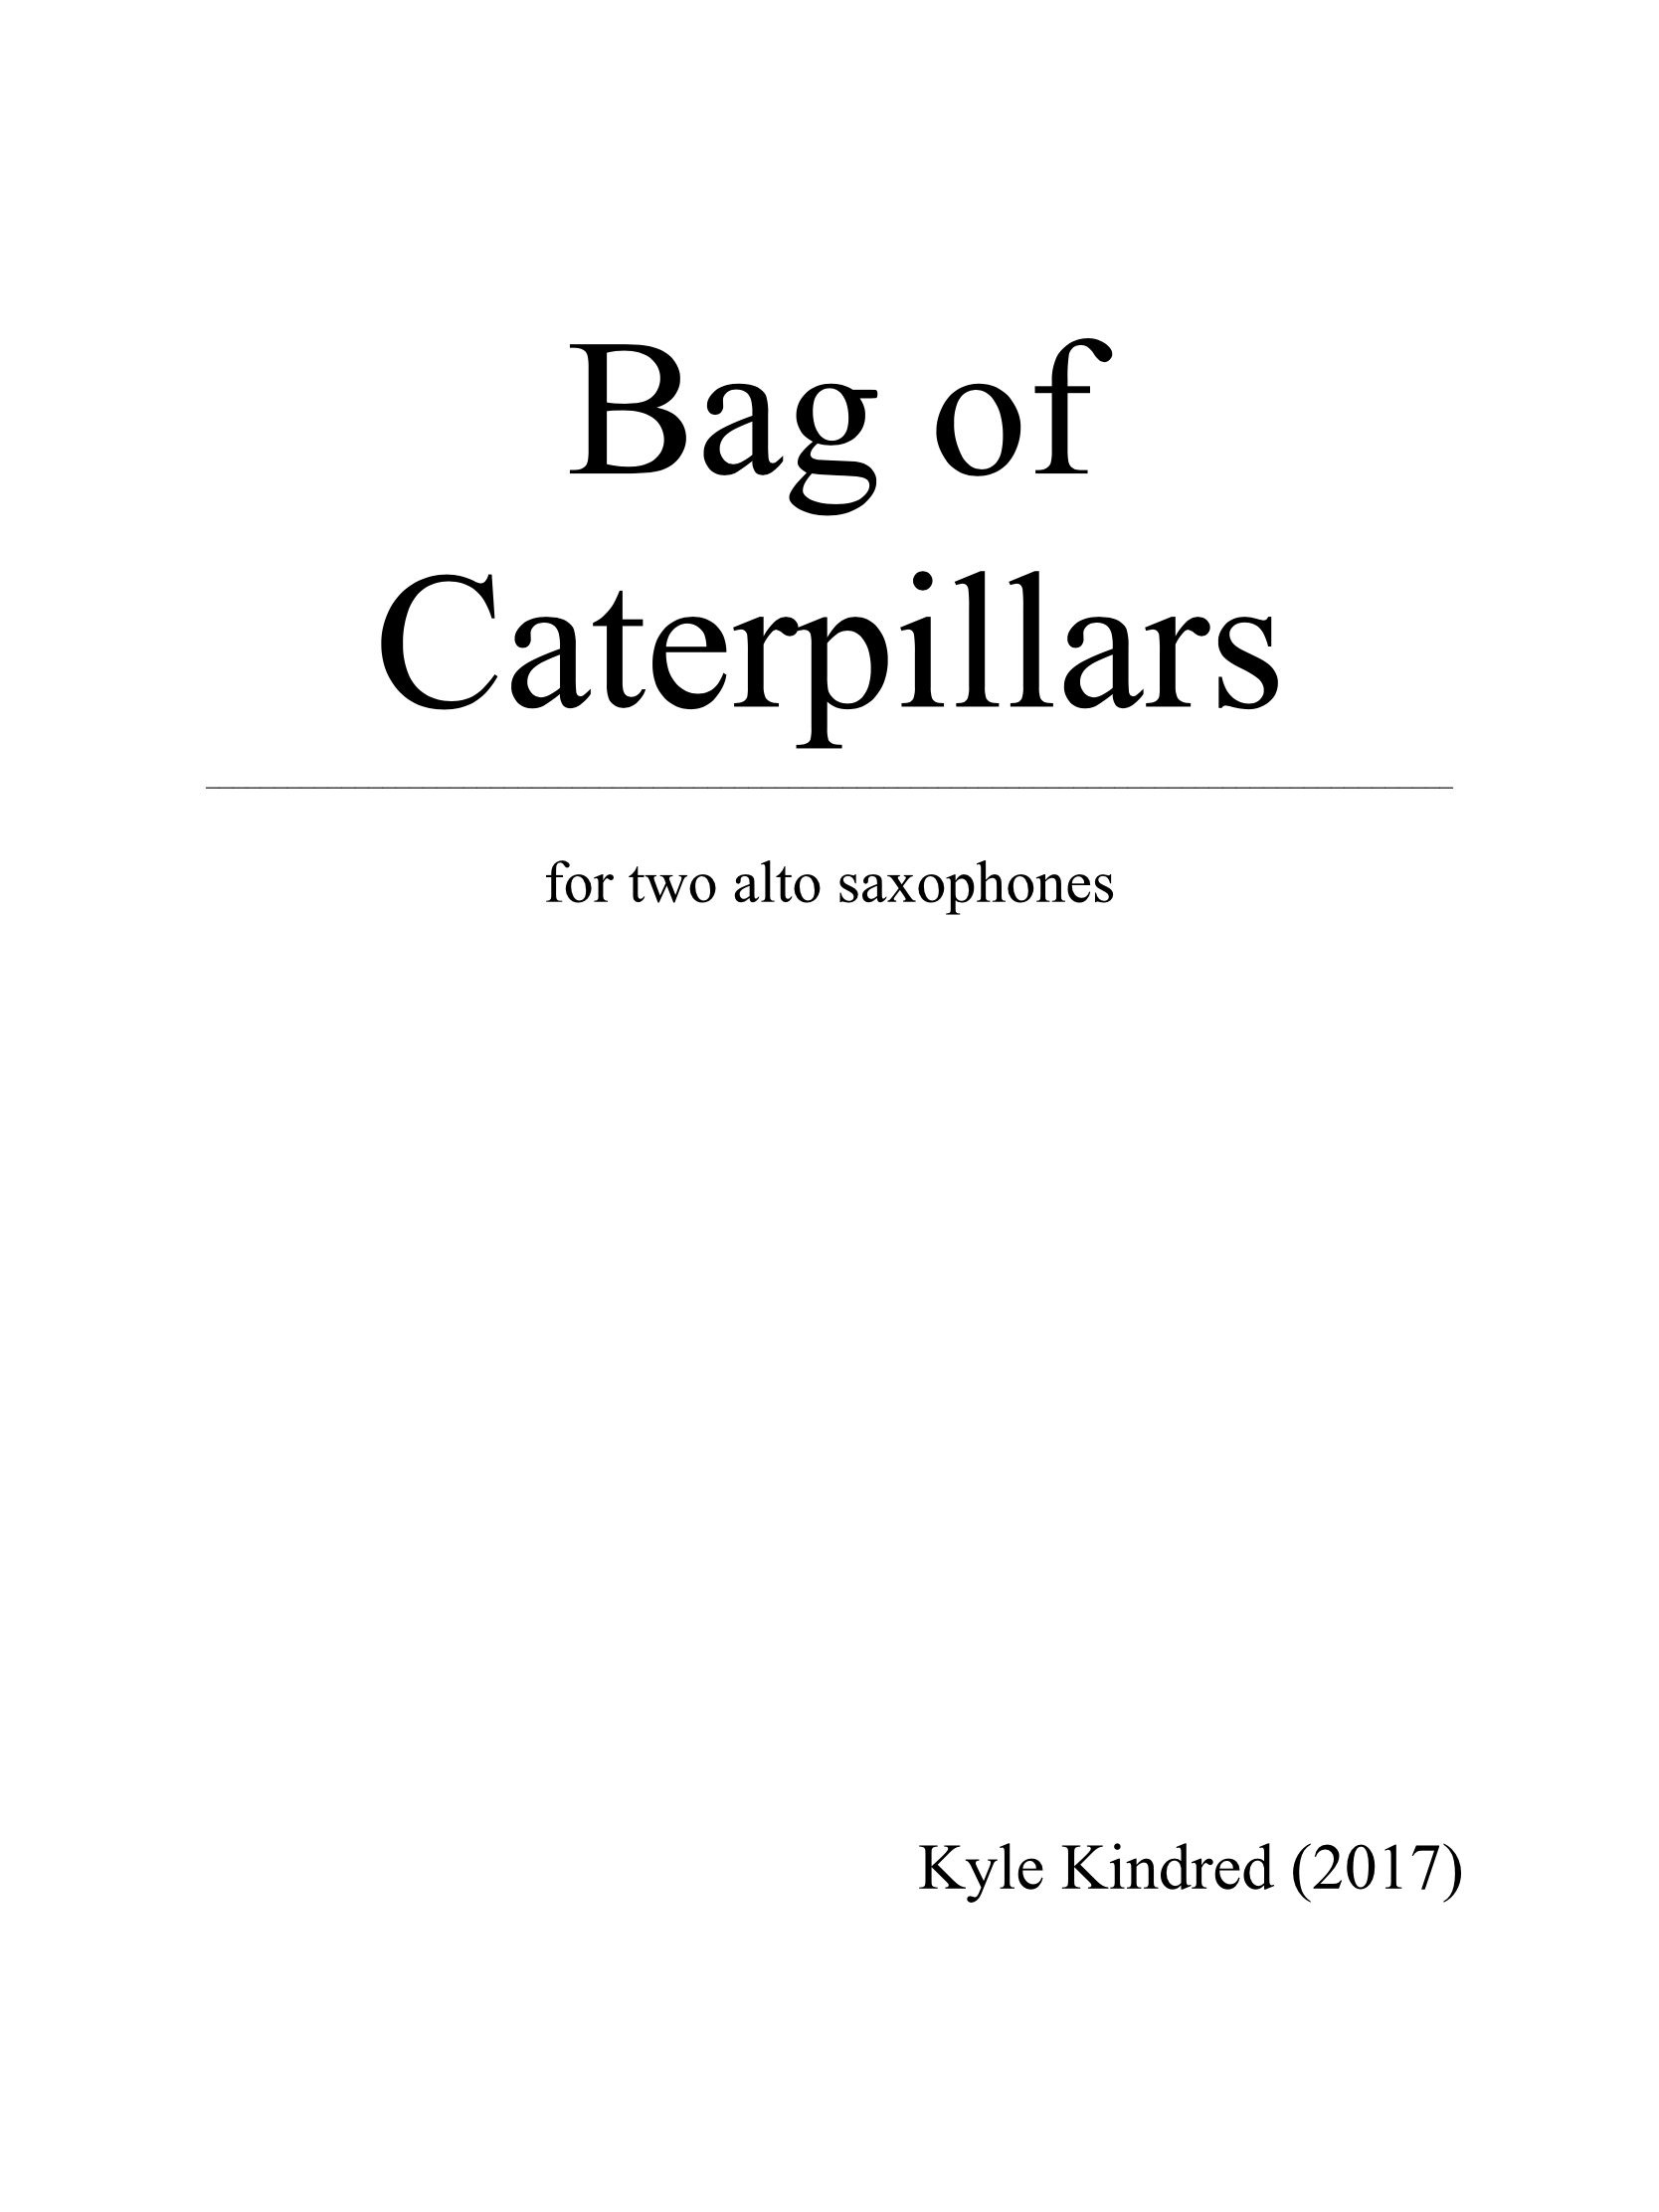 Bag Of Caterpillars  by Kyle Kindred